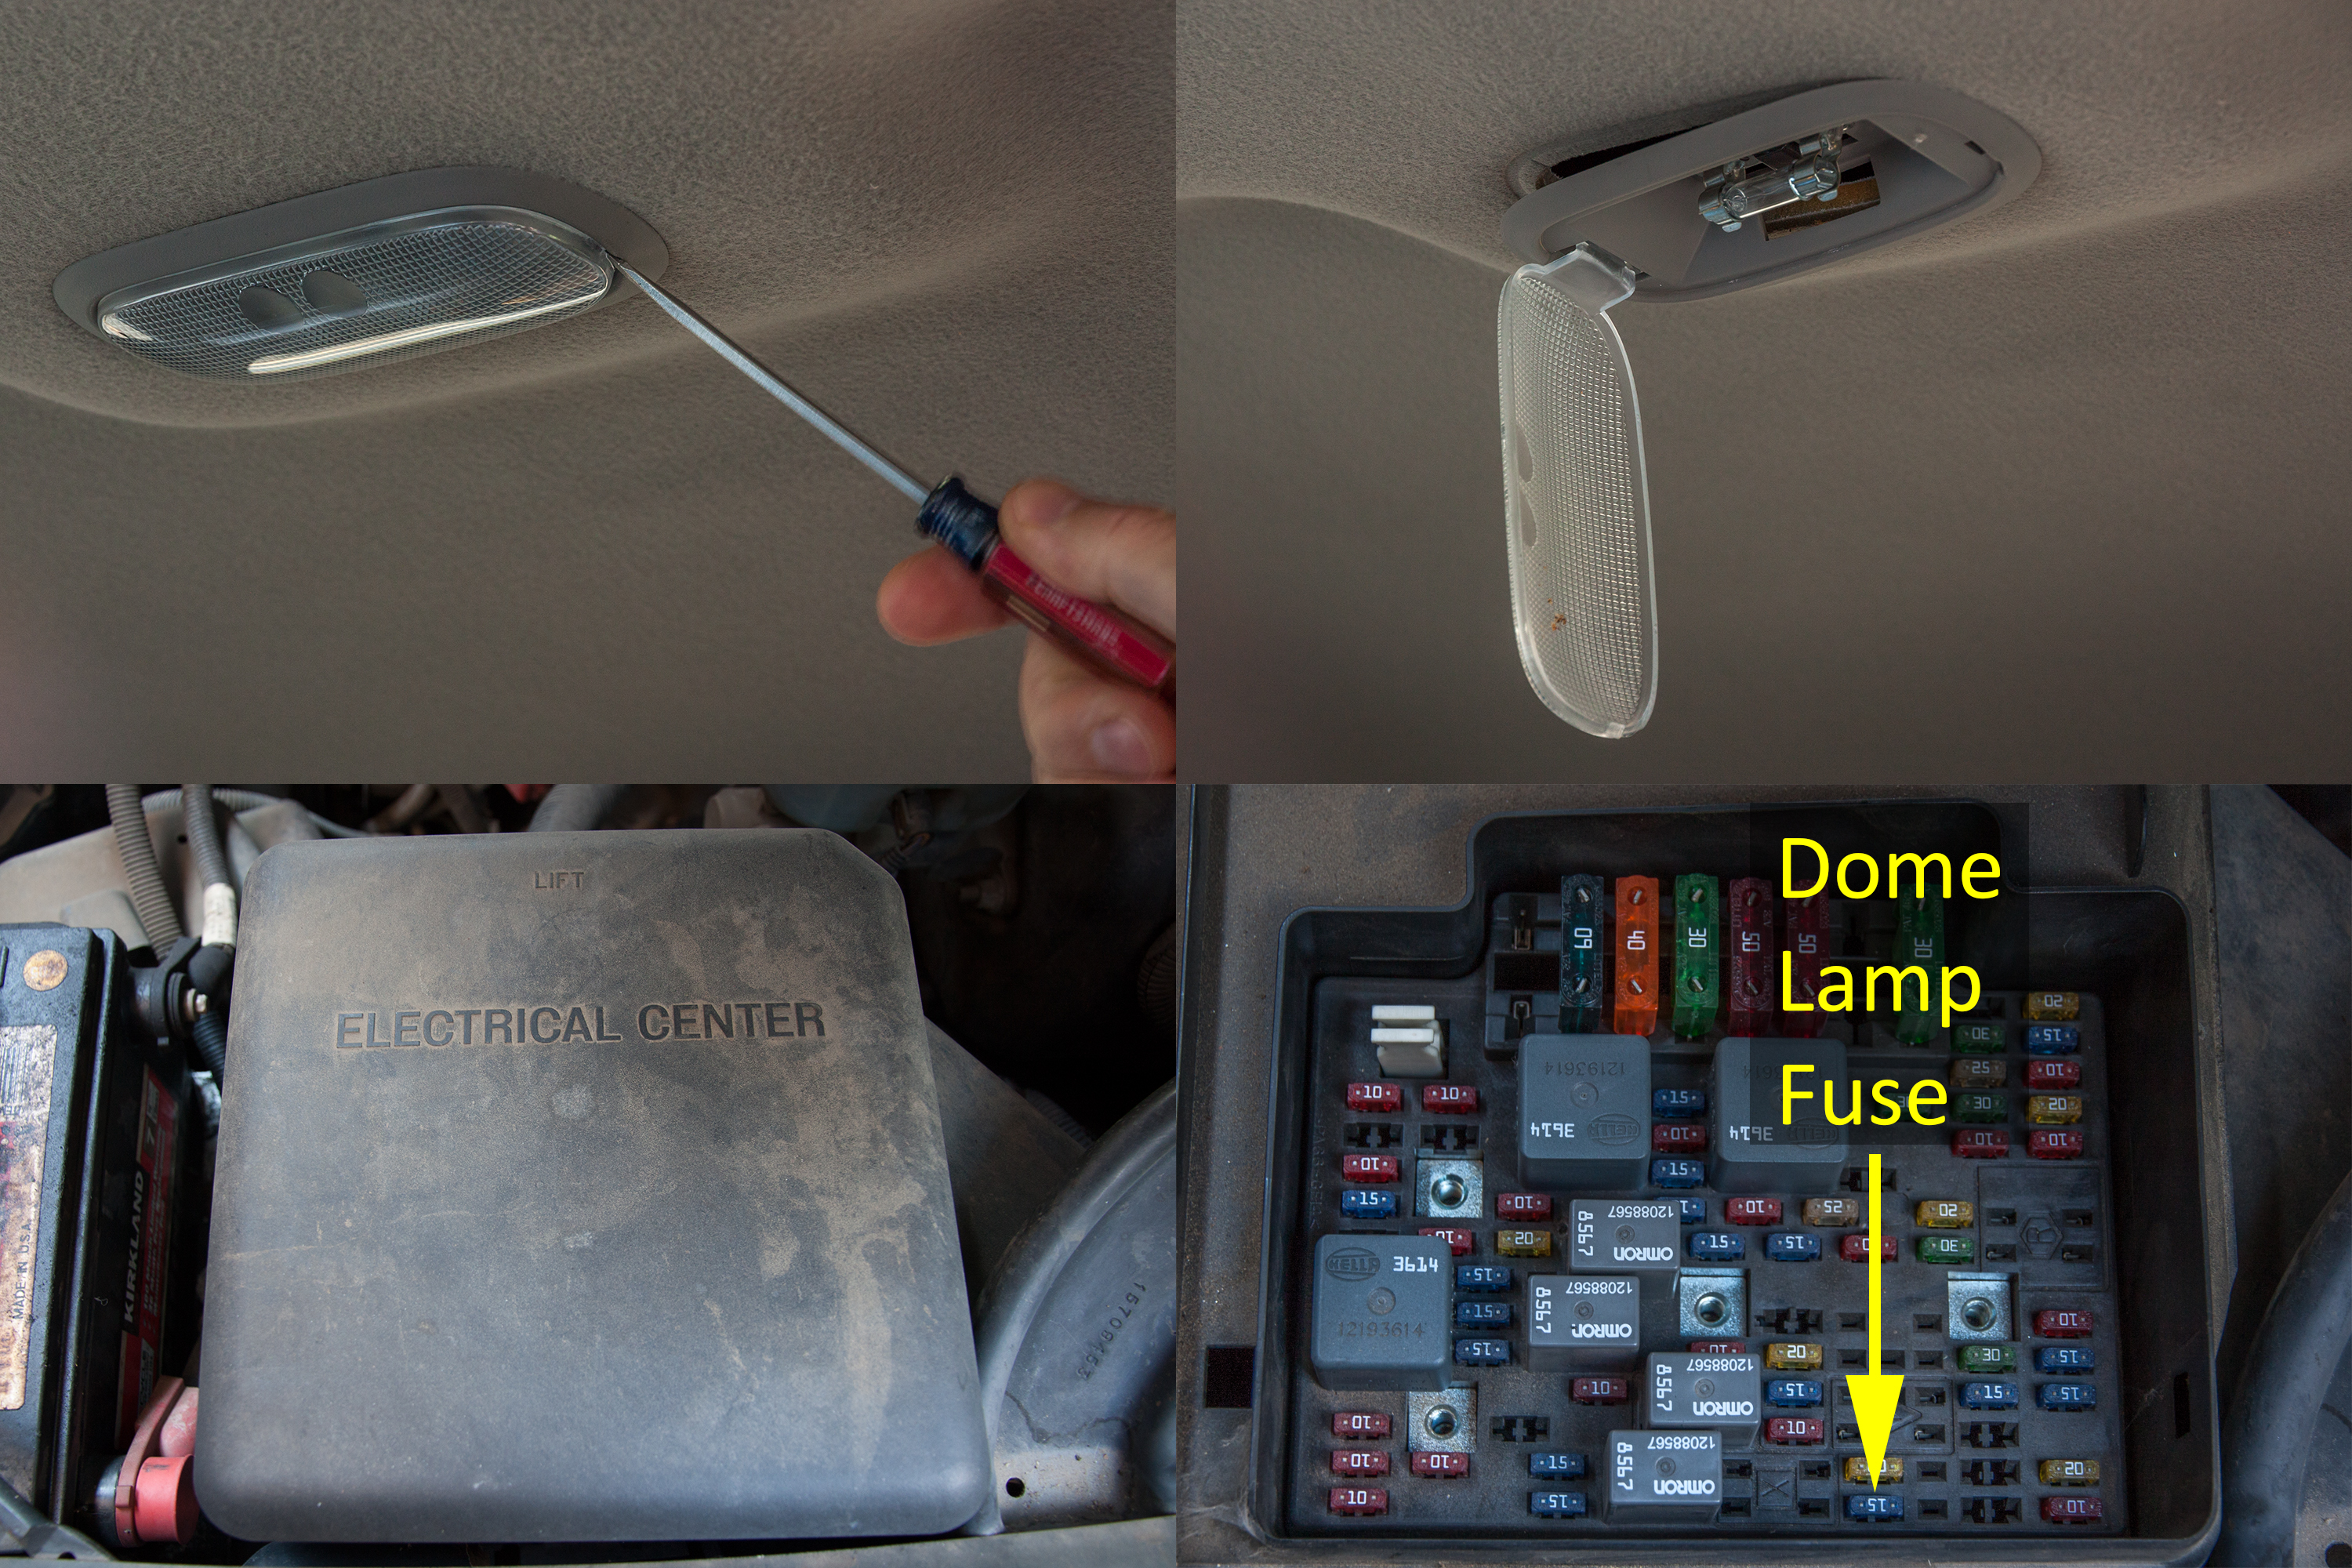 b1324b8b 9560 4e0d b41a a6dc8285989a how to make the dome light come on in a chevy truck it still  at downloadfilm.co